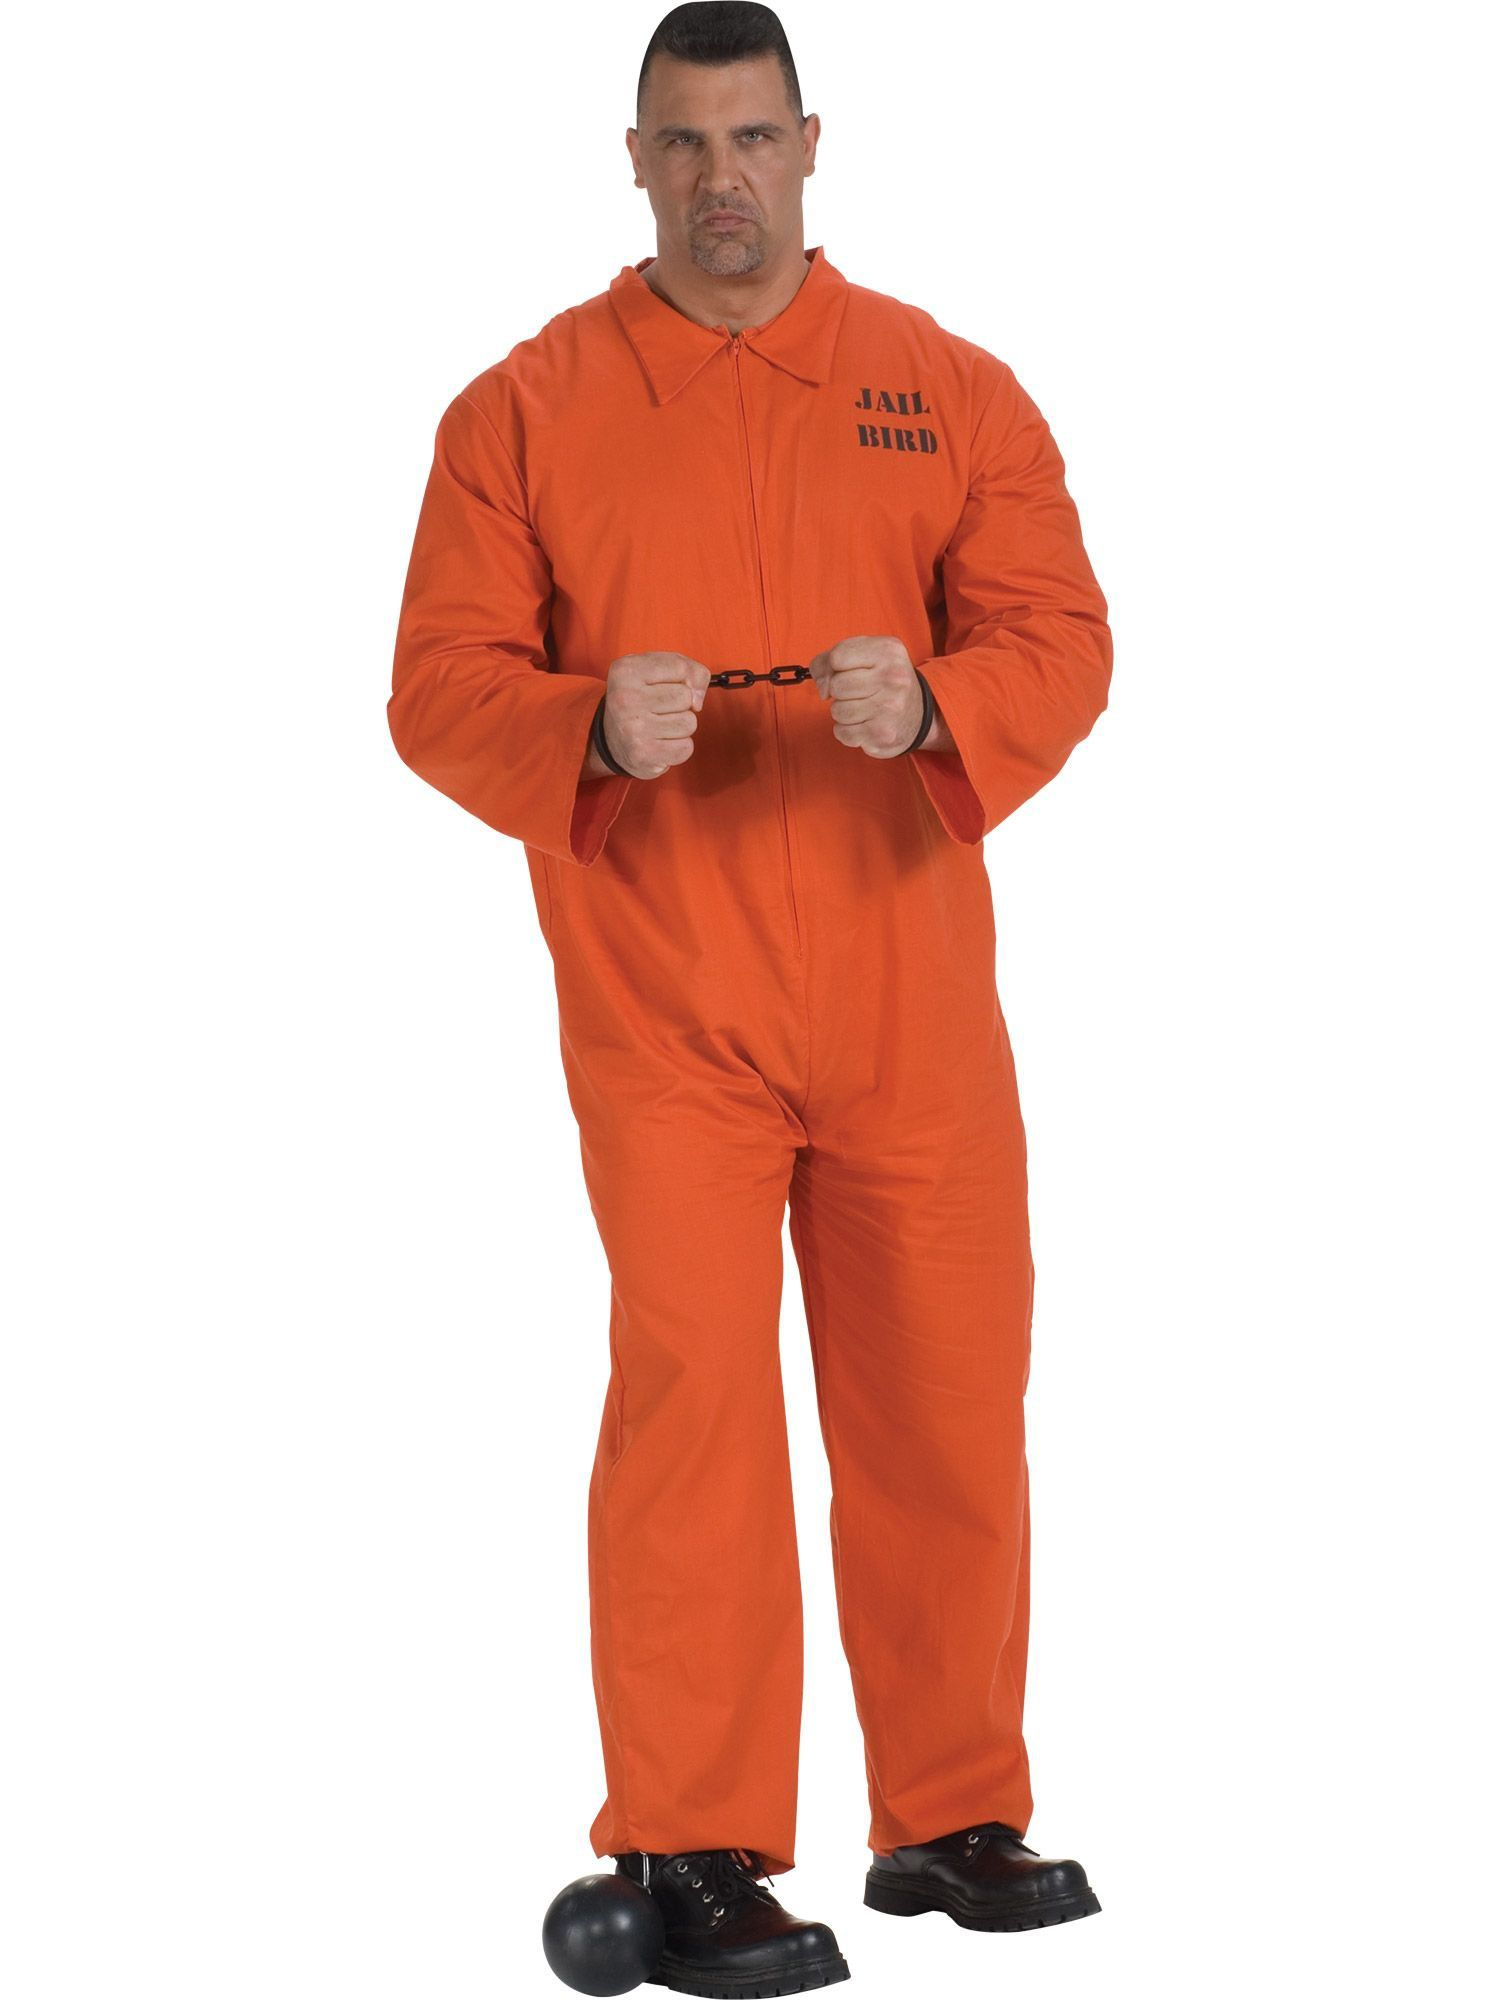 8c1026decce Jail Bird Costume - Mens Costumes for 2018